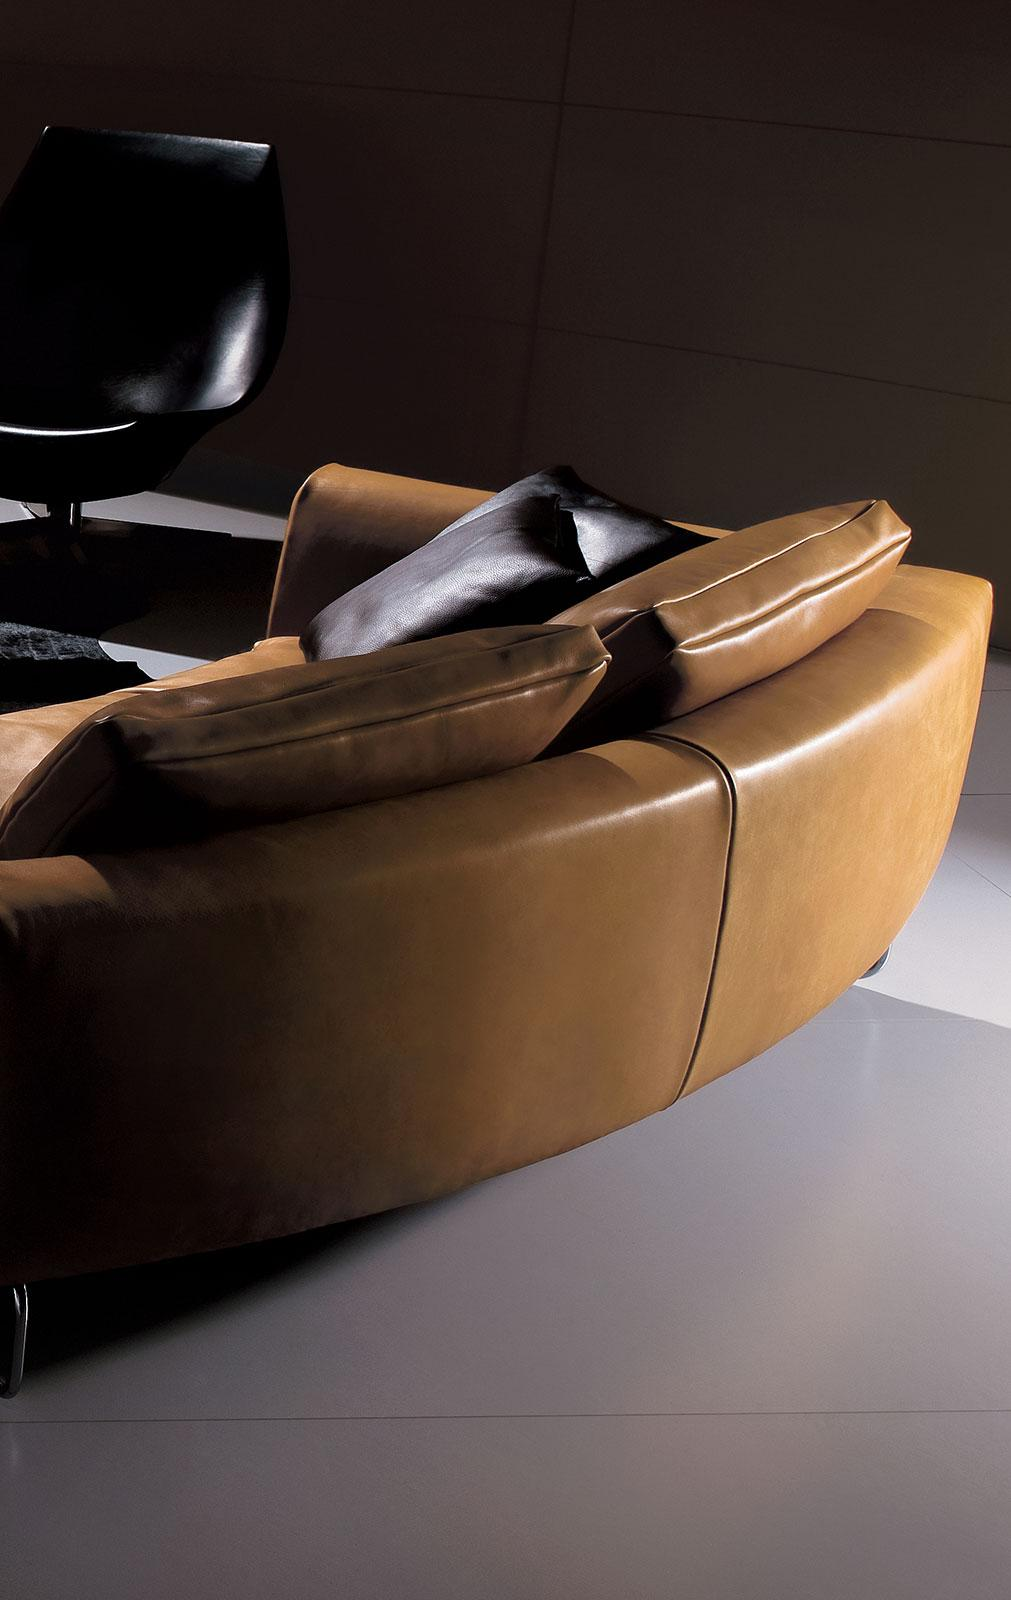 Add-Look Round is a luxury sofa with solid wood frame, goose feather padding and leather covering. This Round leather sofa is perfect for any elegant and stylish room.